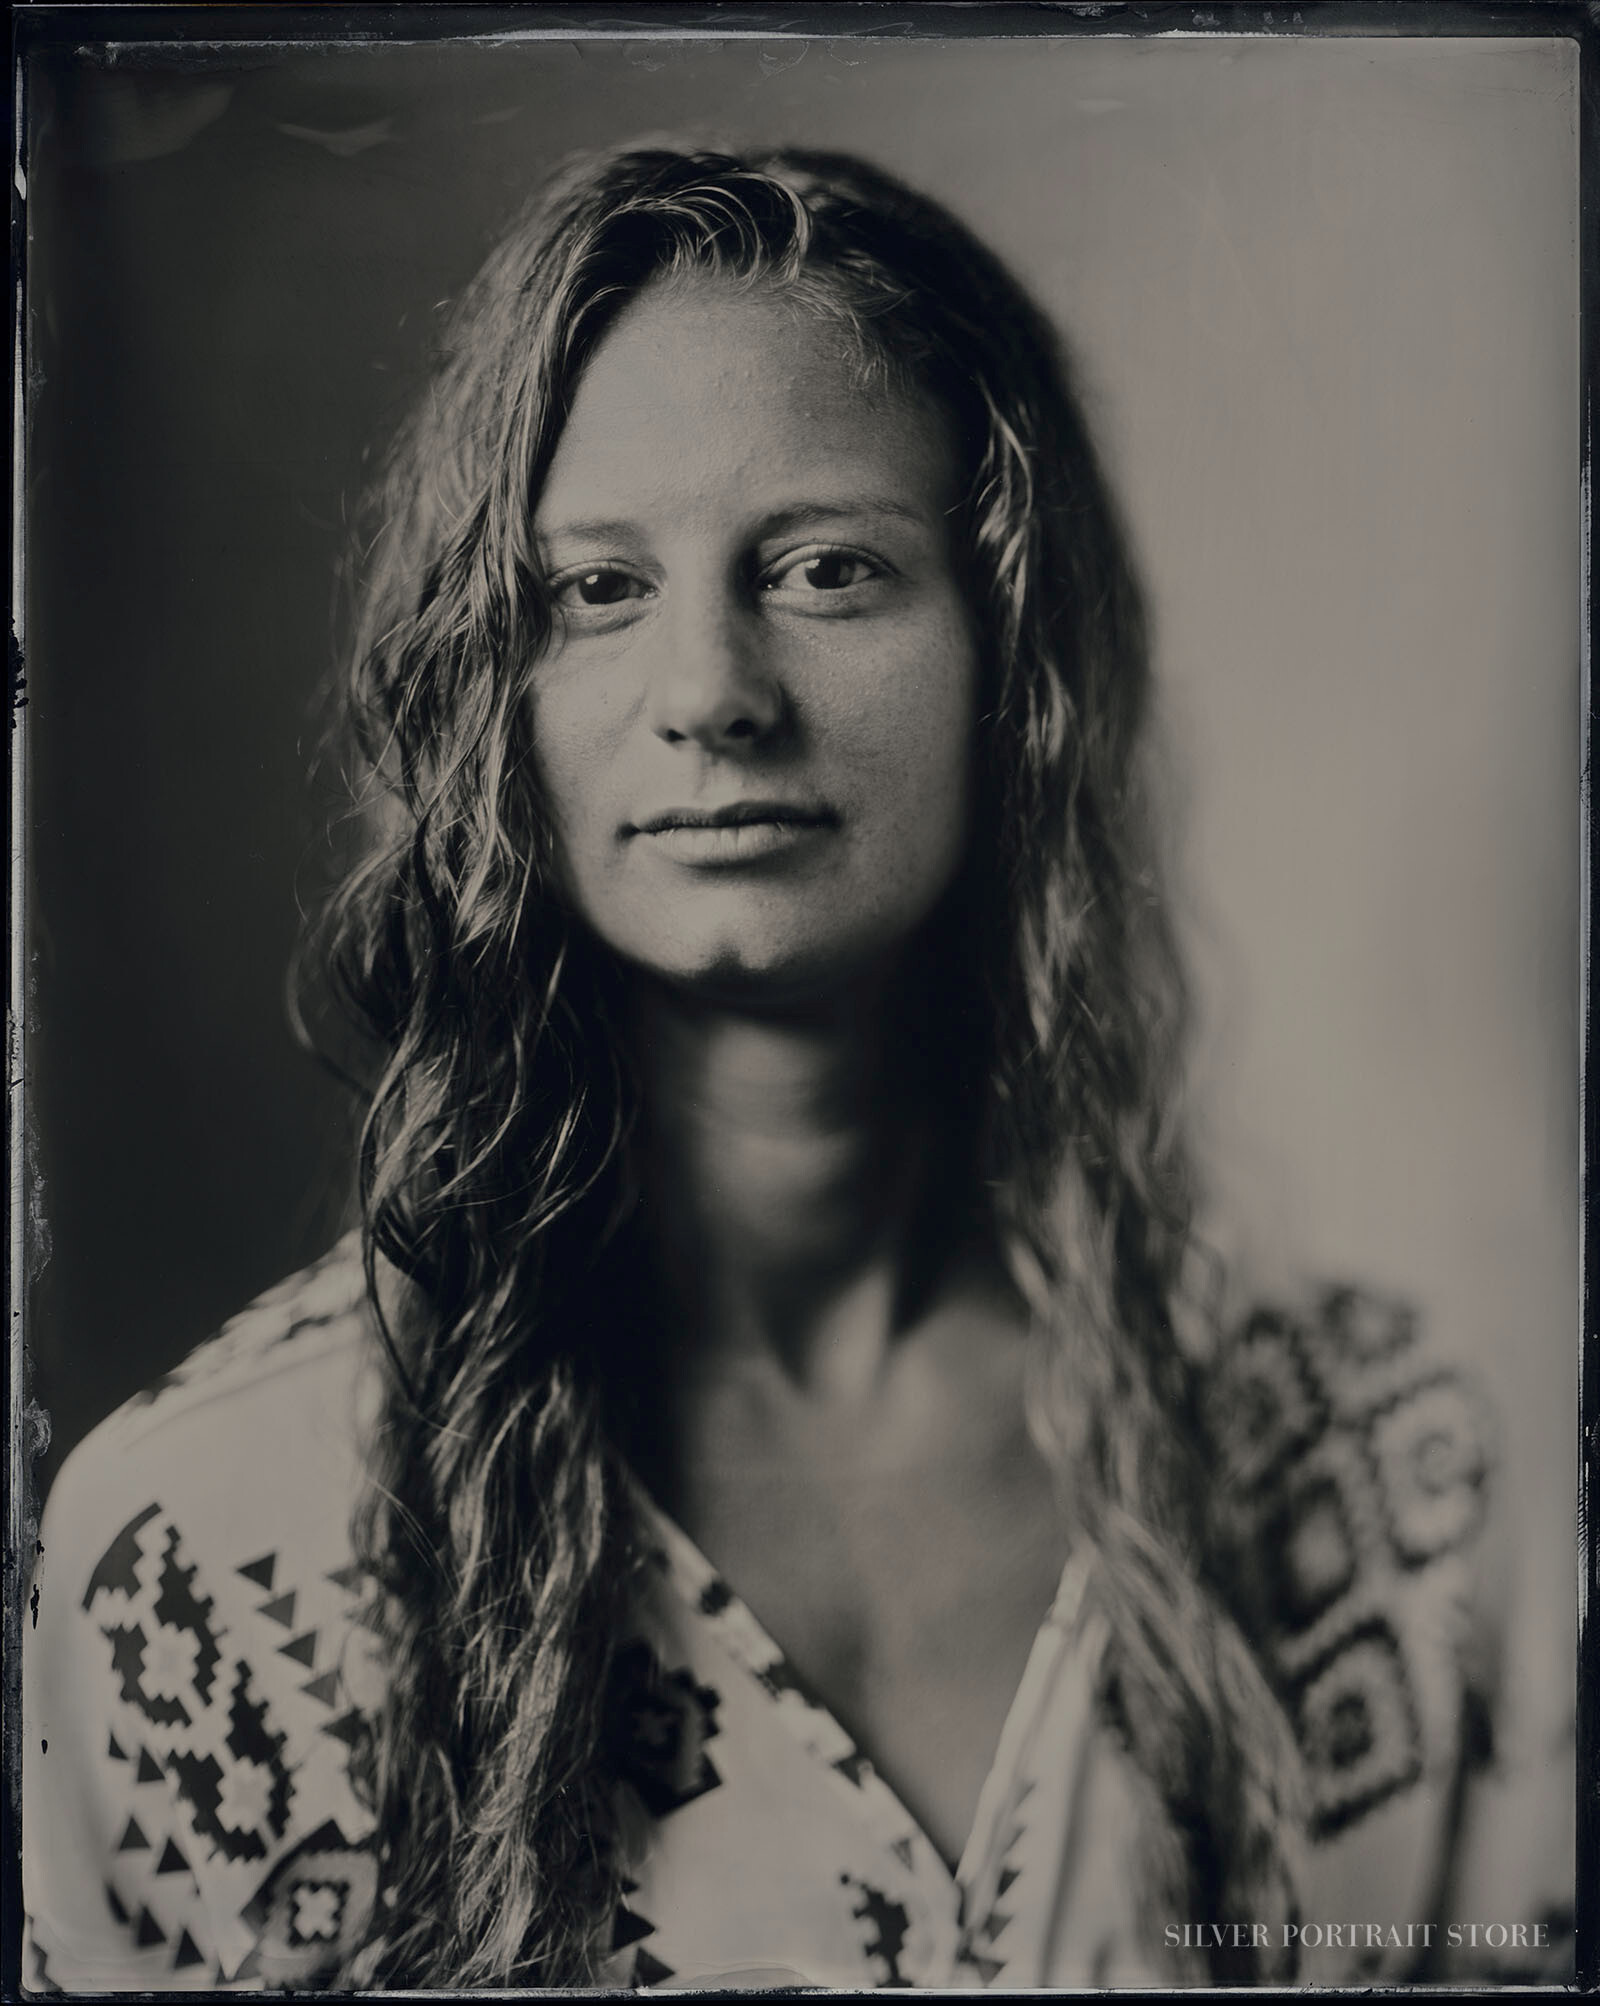 Anin-Silver Portrait Store-scan from Wet plate collodion-Tintype 20 x 25 cm